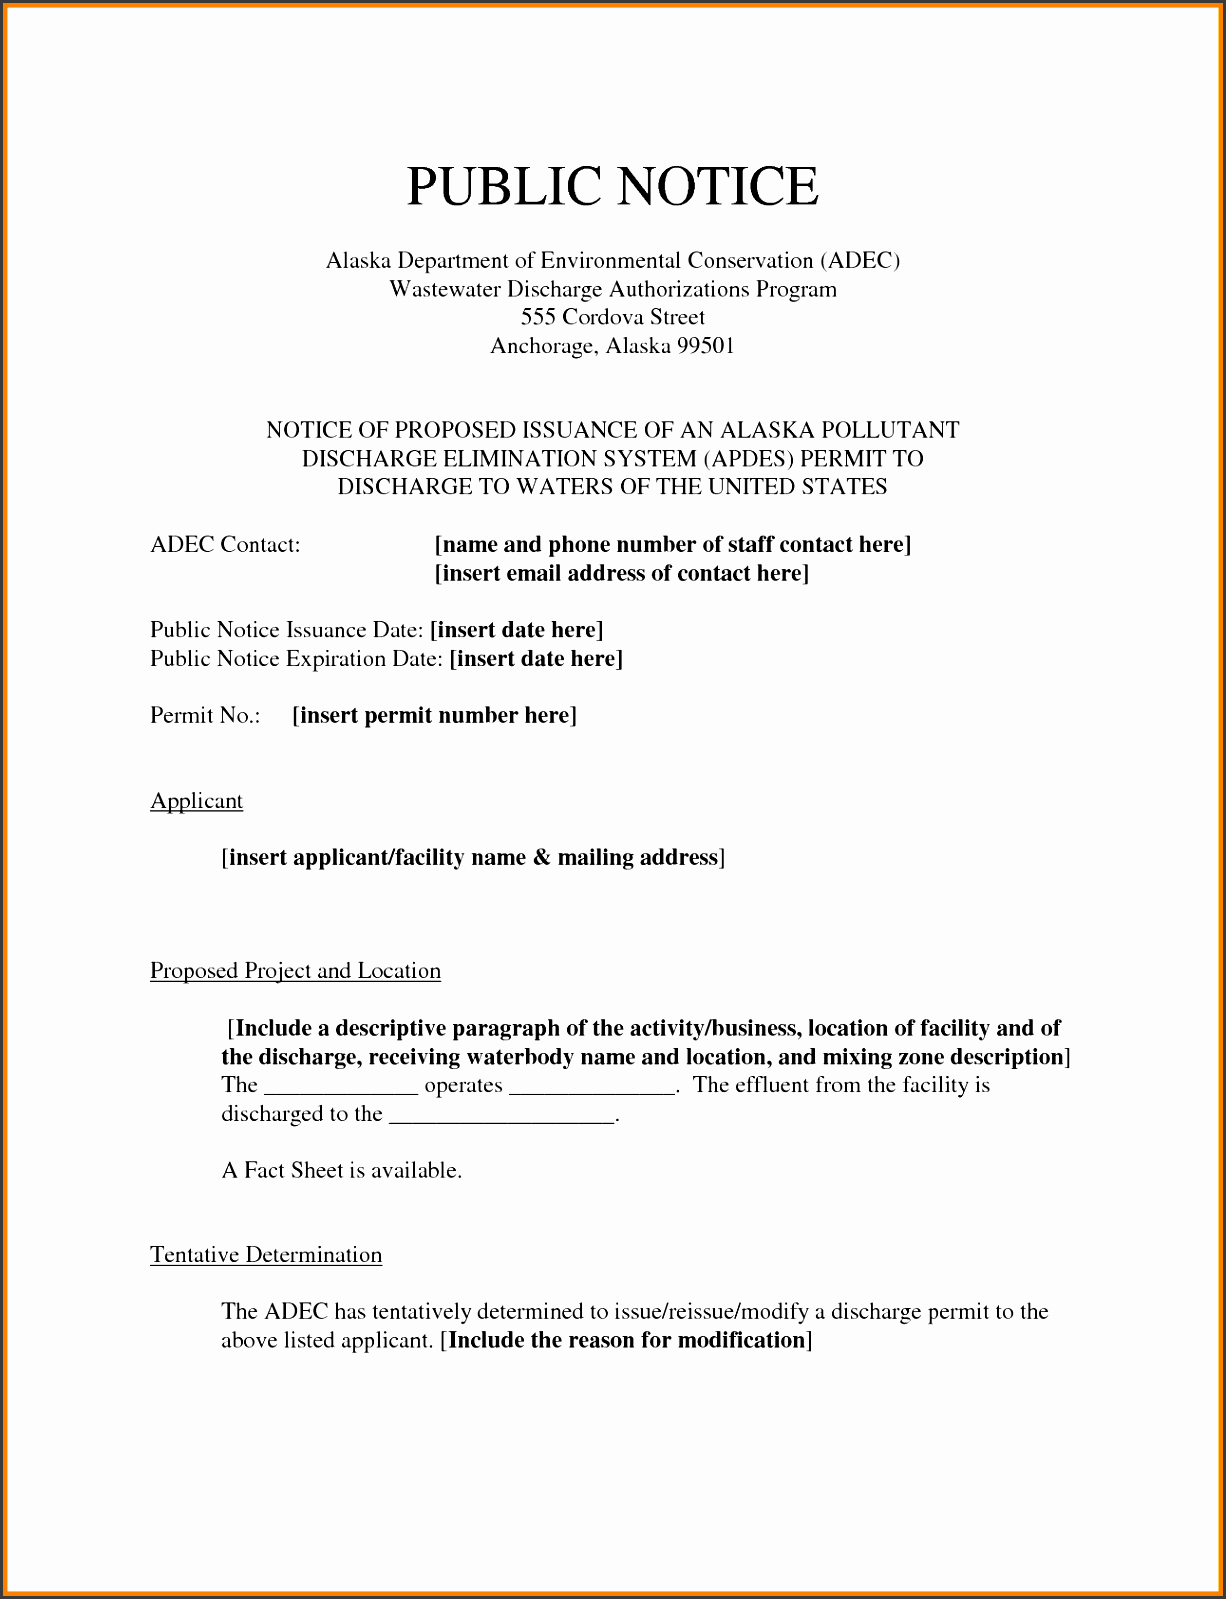 5 Eviction Notice Template Downloadable SampleTemplatess Eviction Notice  Template Downloadable Bkuve Awesome Legal Notice Template Of  Free Eviction Notice Template